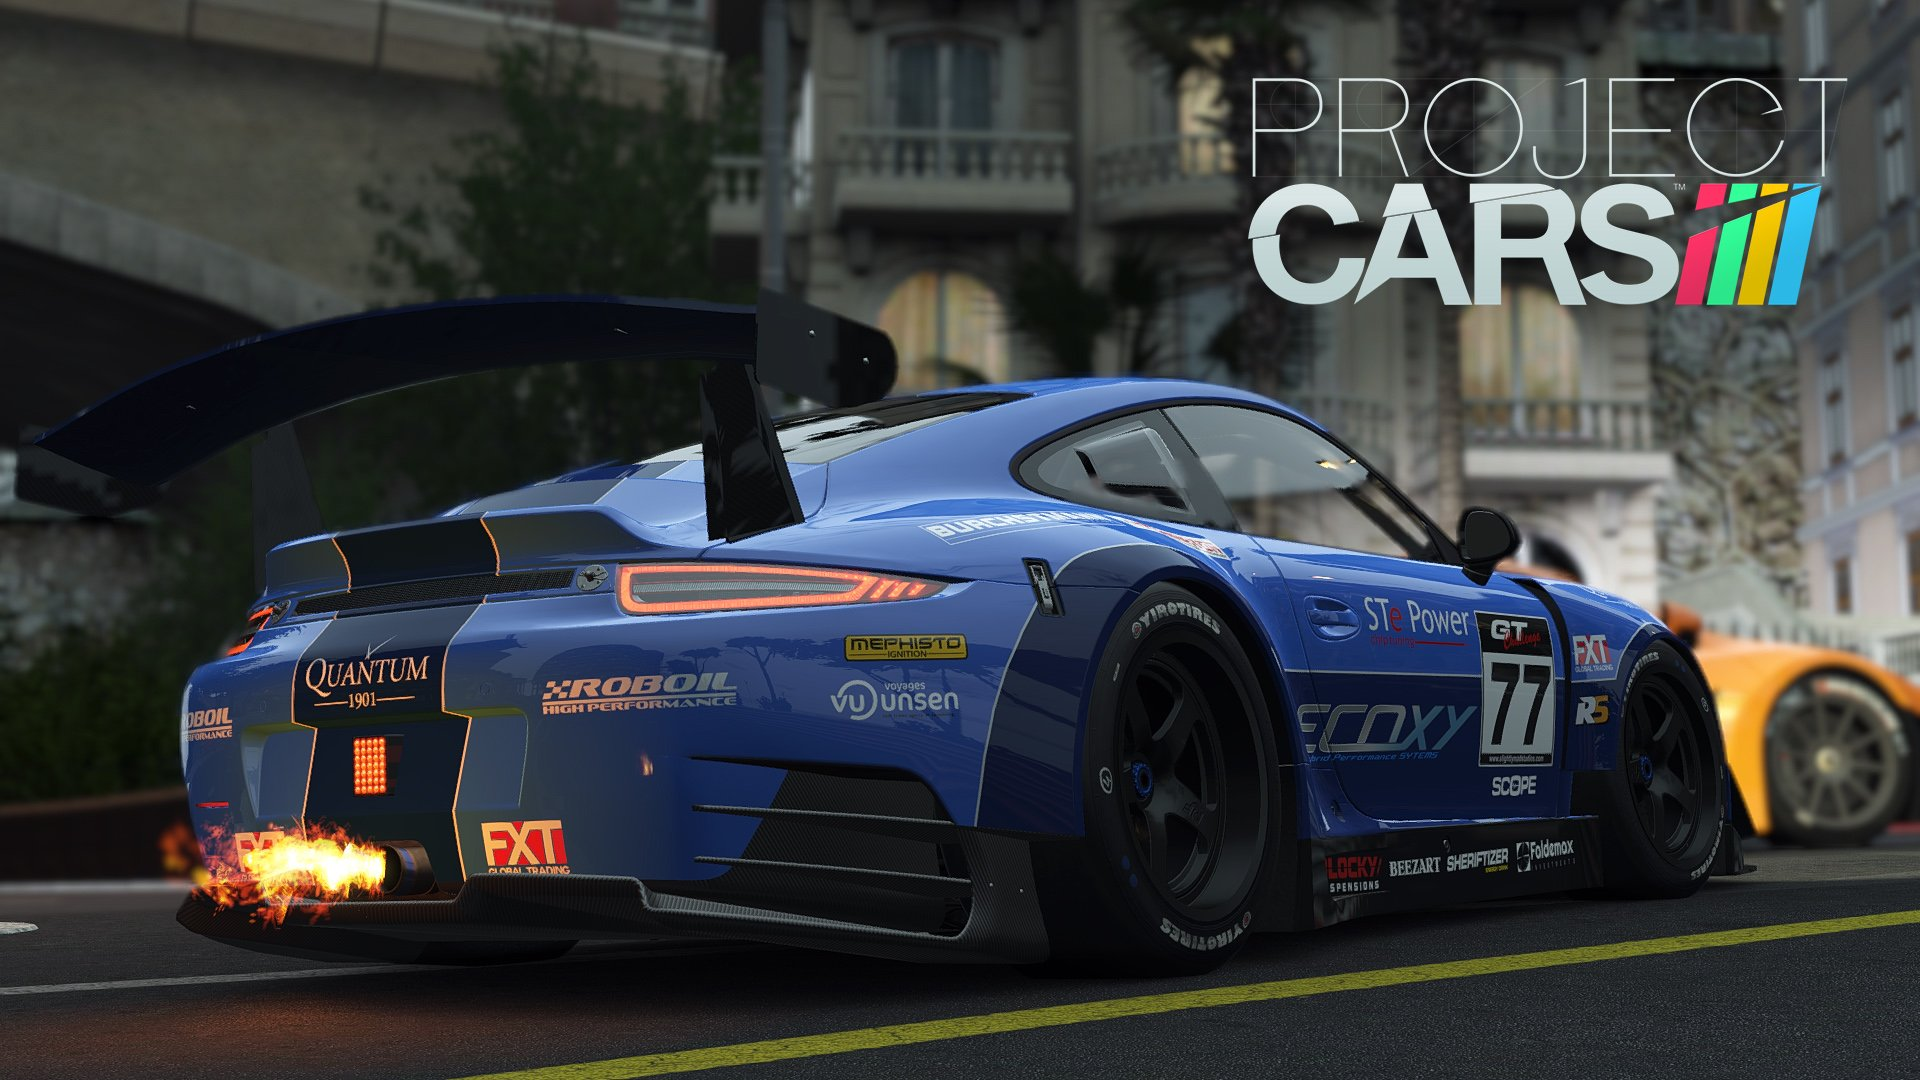 #11 PROJECT CARS